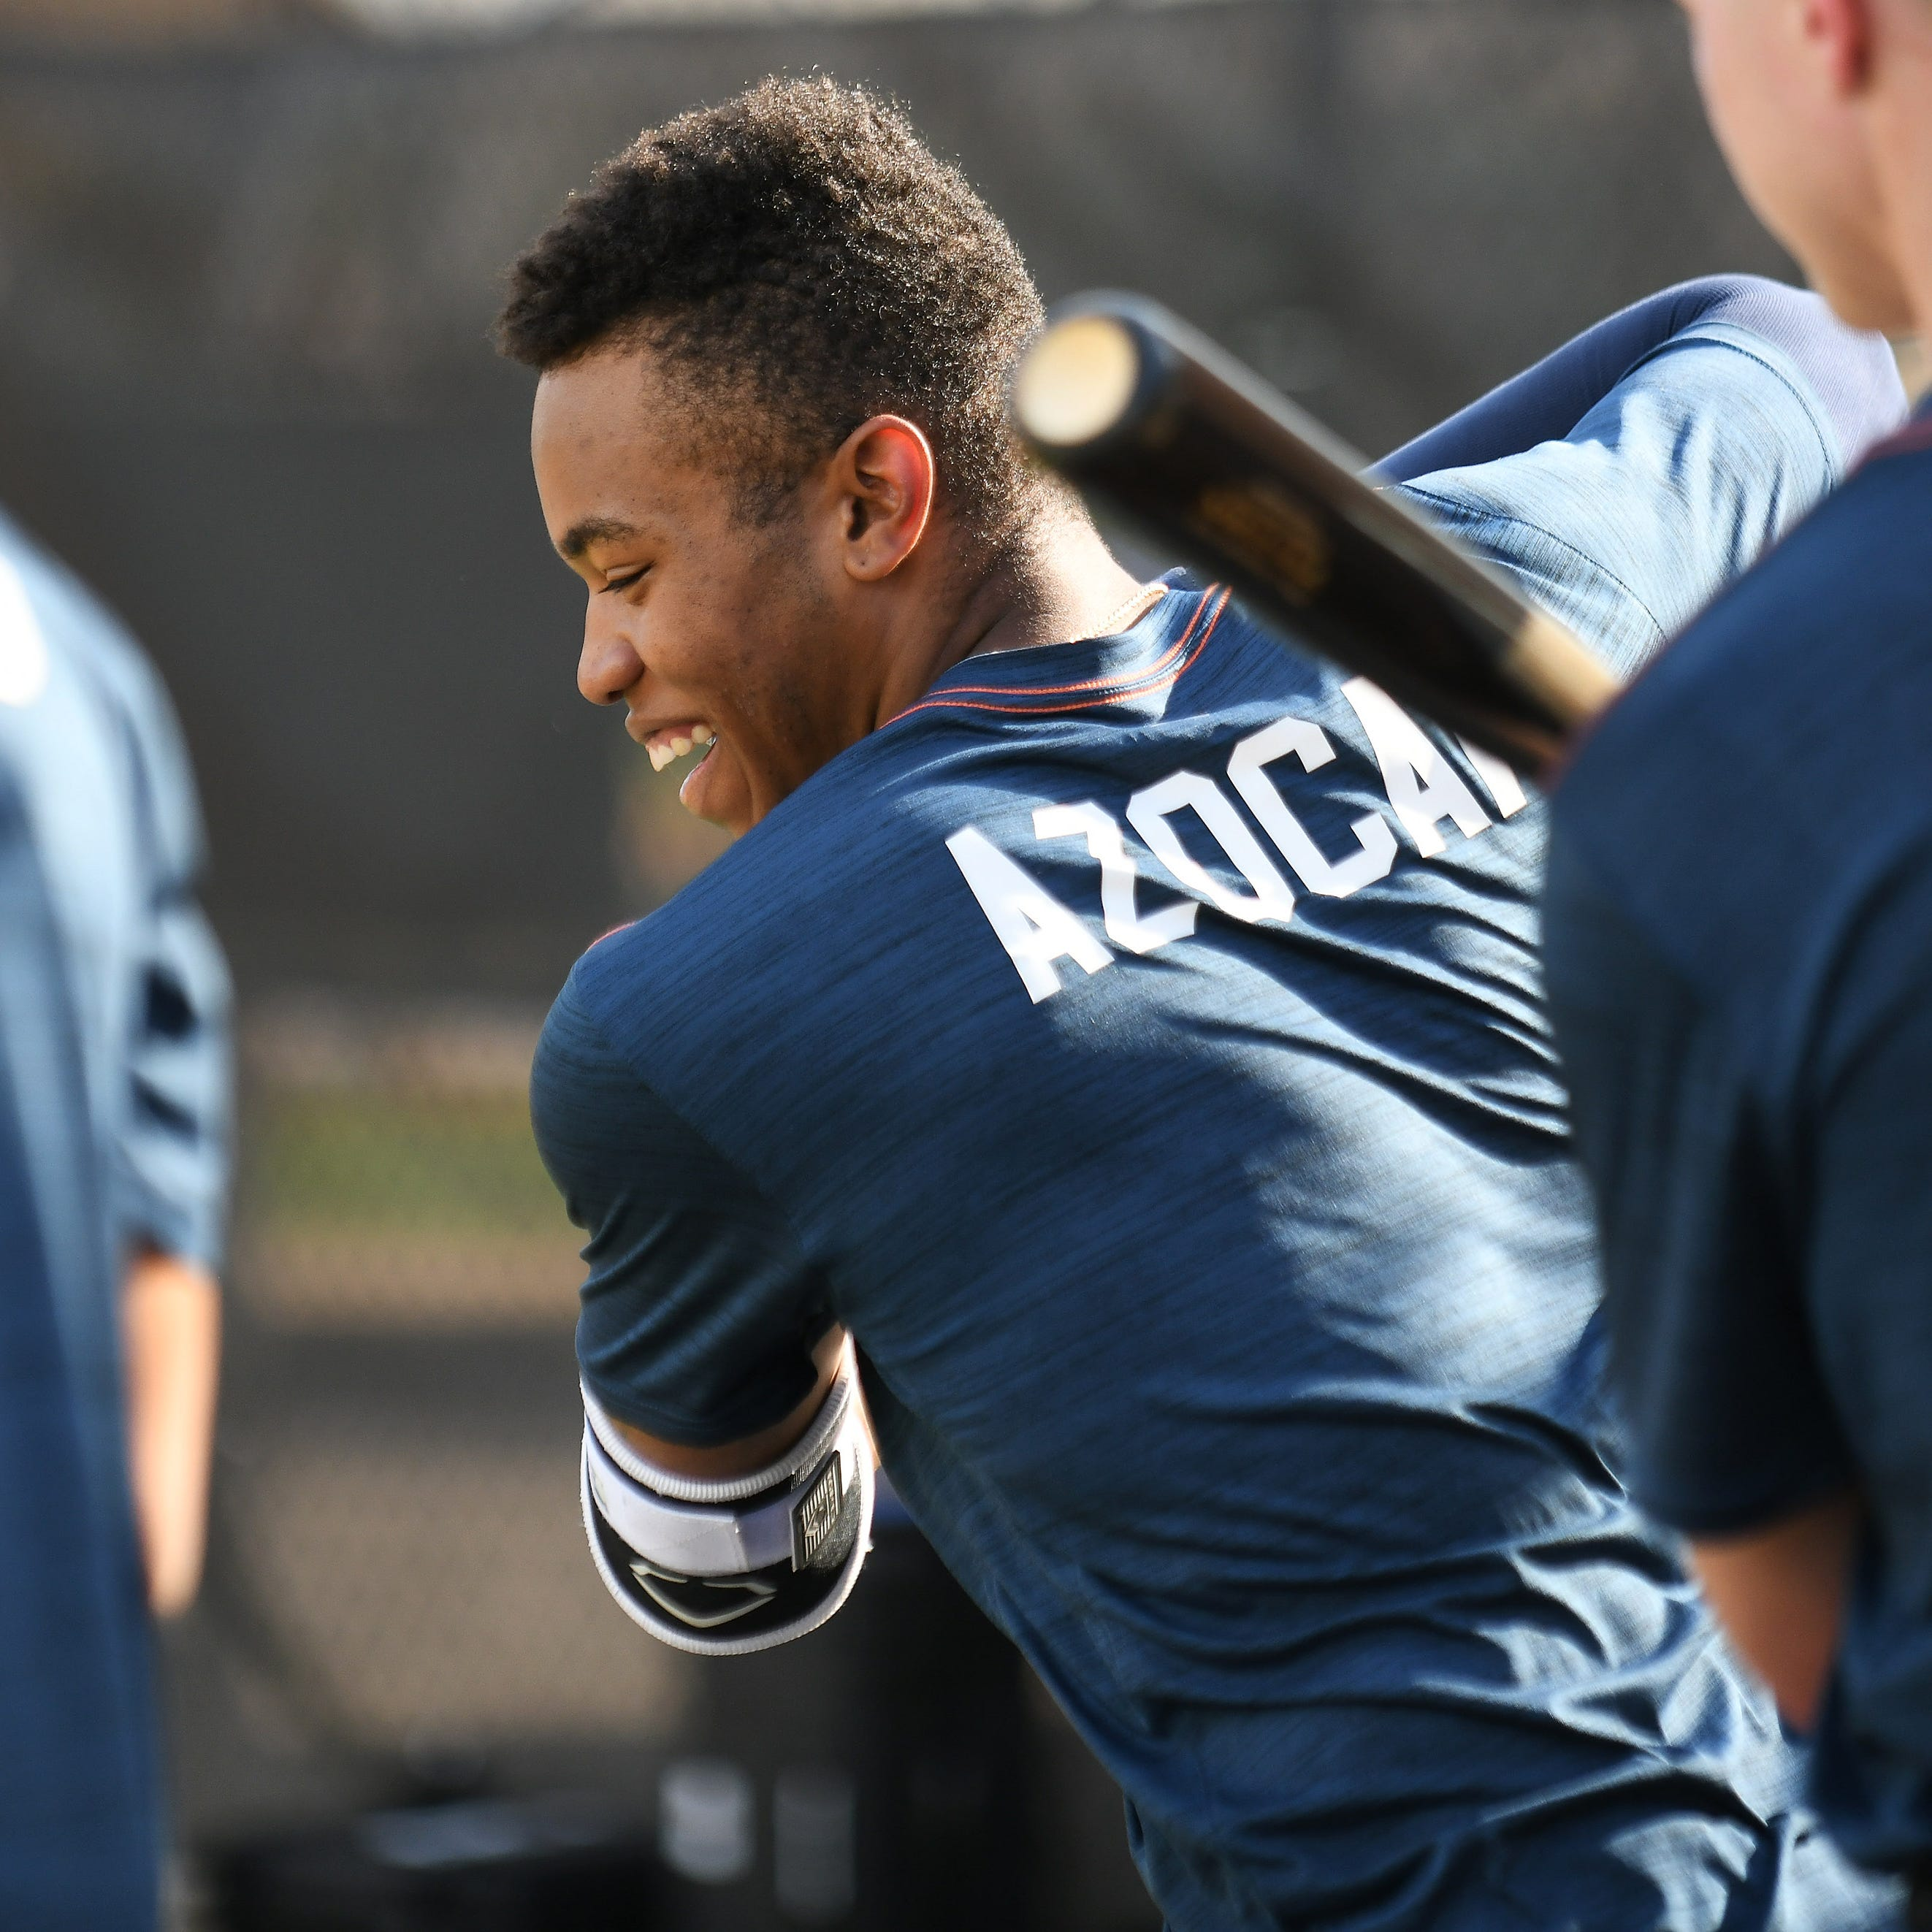 Tigers outfield prospect Jose Azocar takes step forward in Double-A Erie